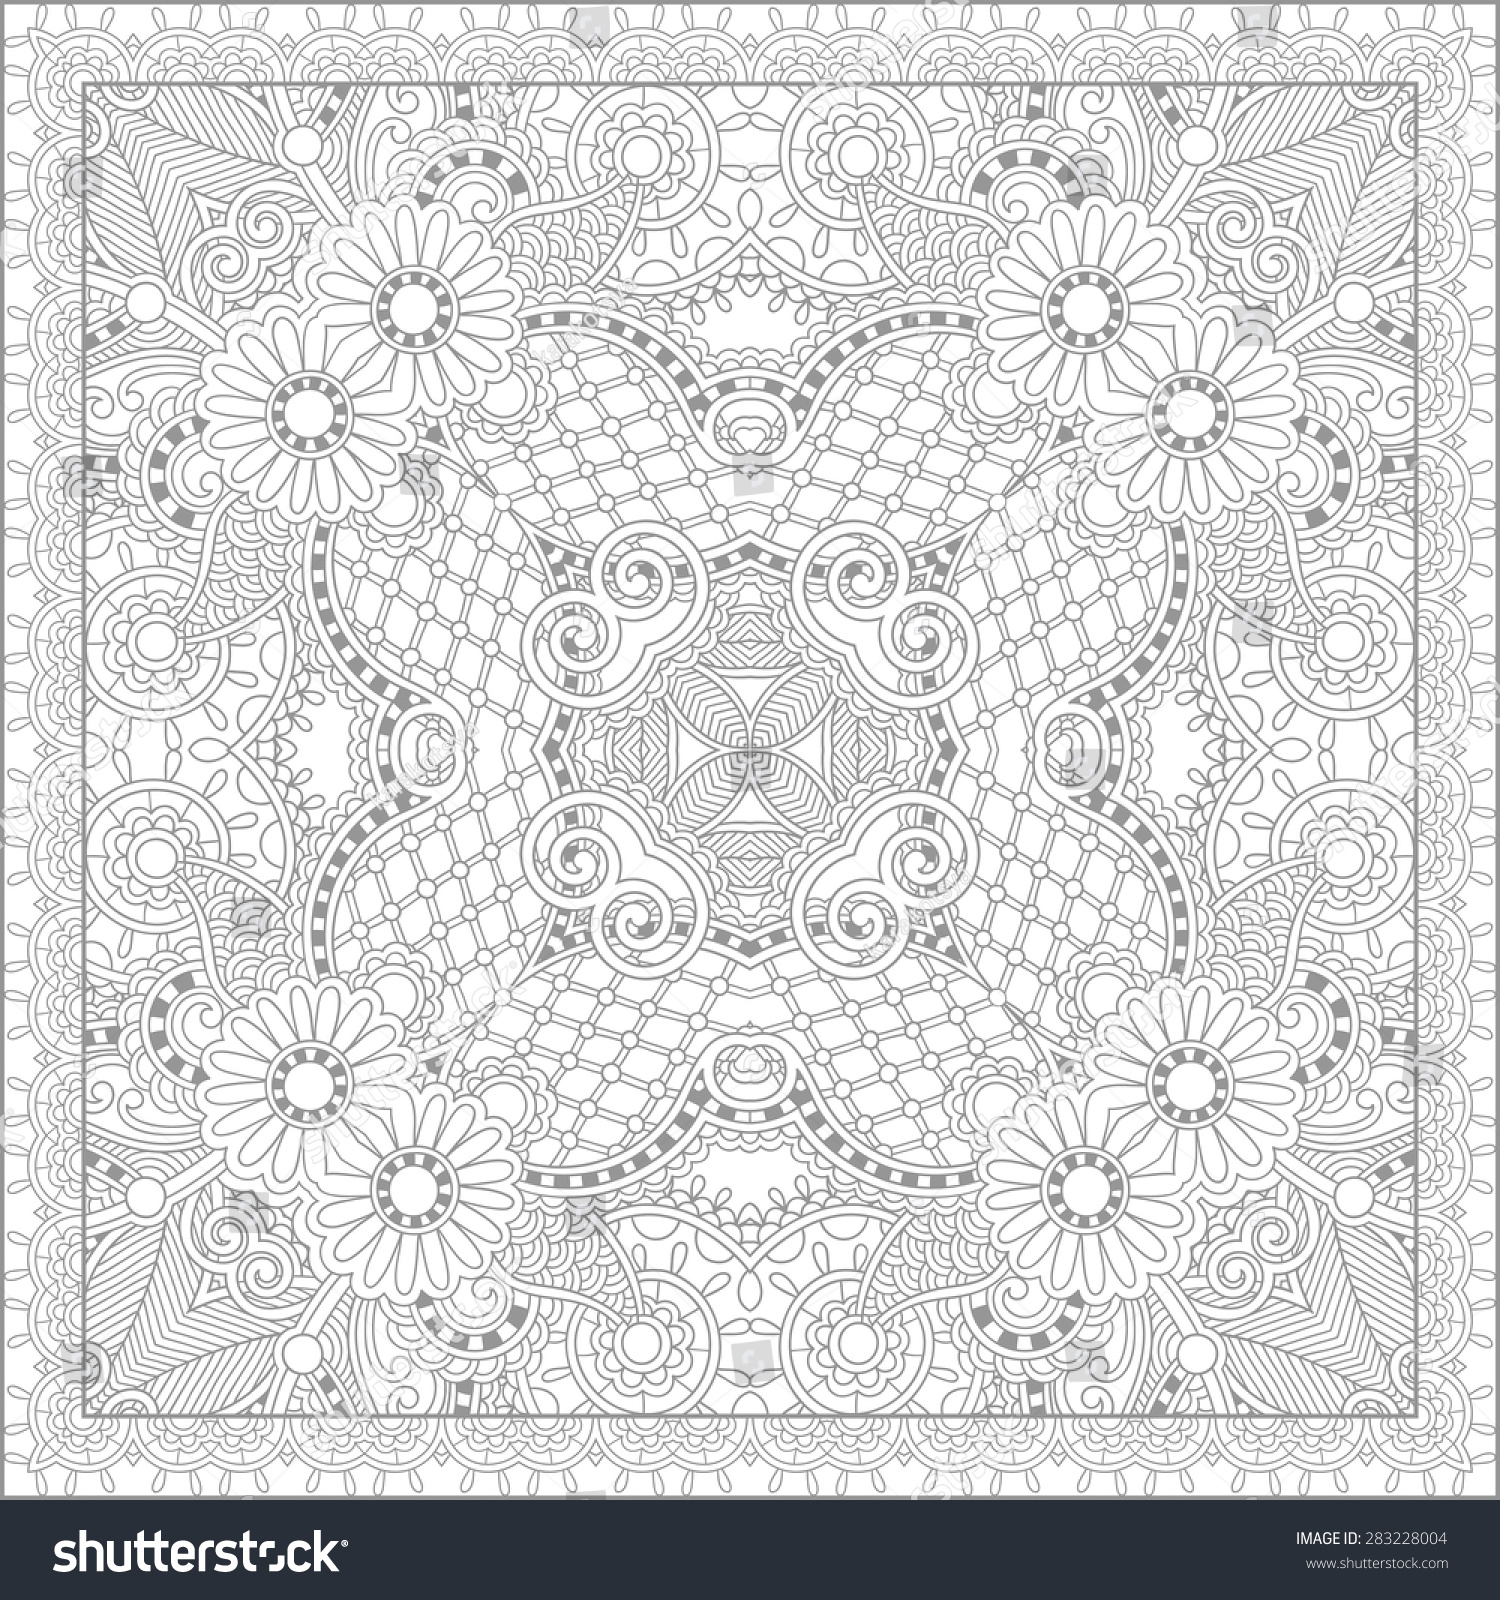 Unique Coloring Book Square Page Adults Stock Vector 283228004